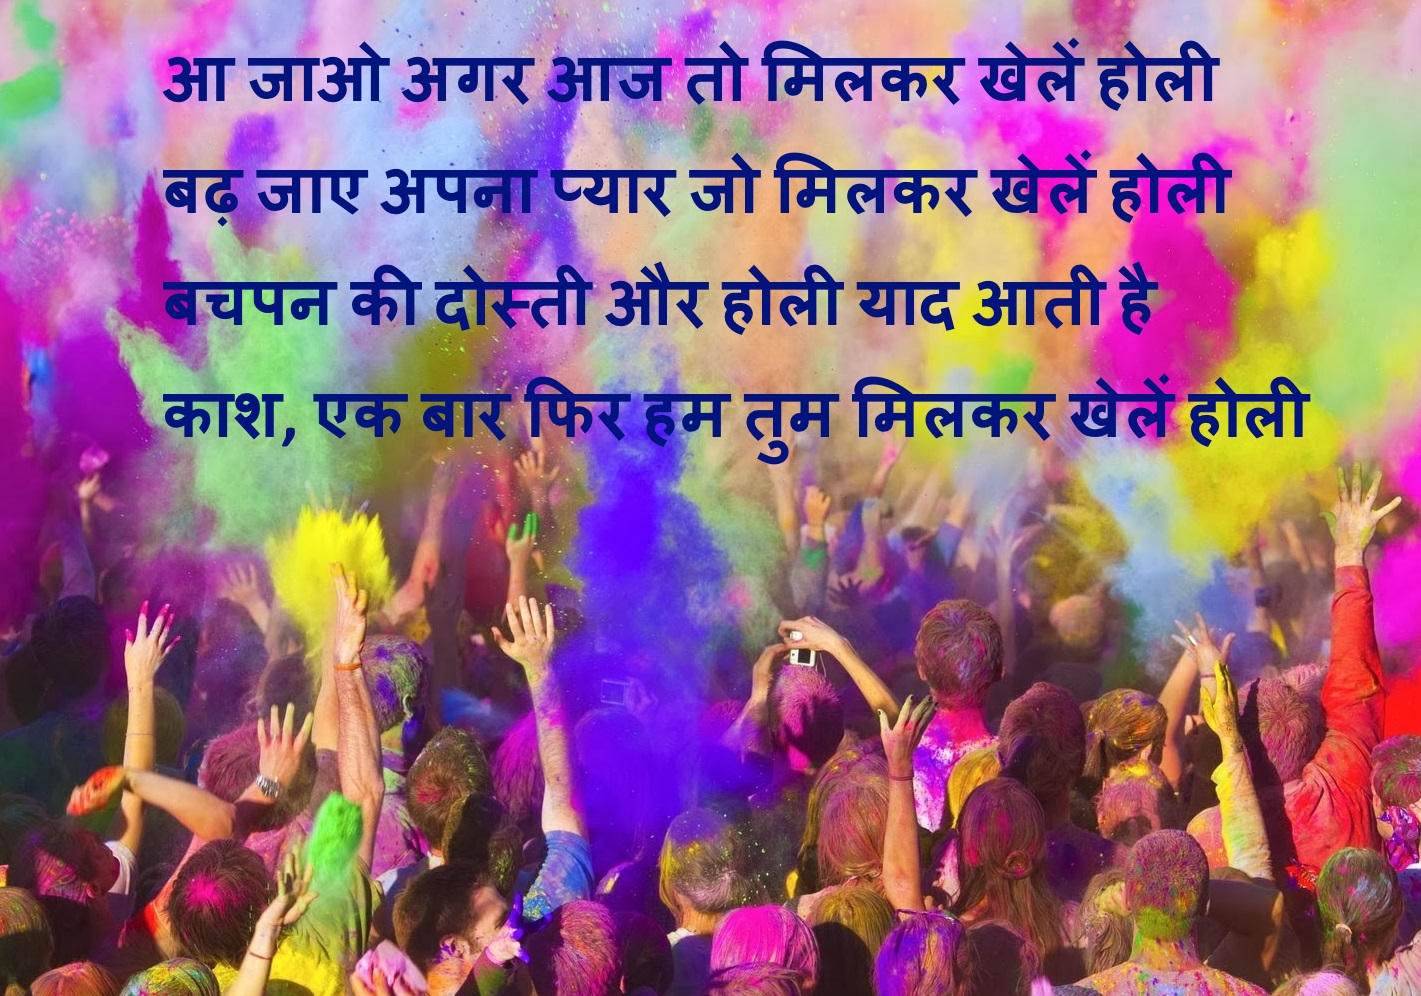 Holi Shayari Wishes Sms In Hindi And Englishget Info About Indian